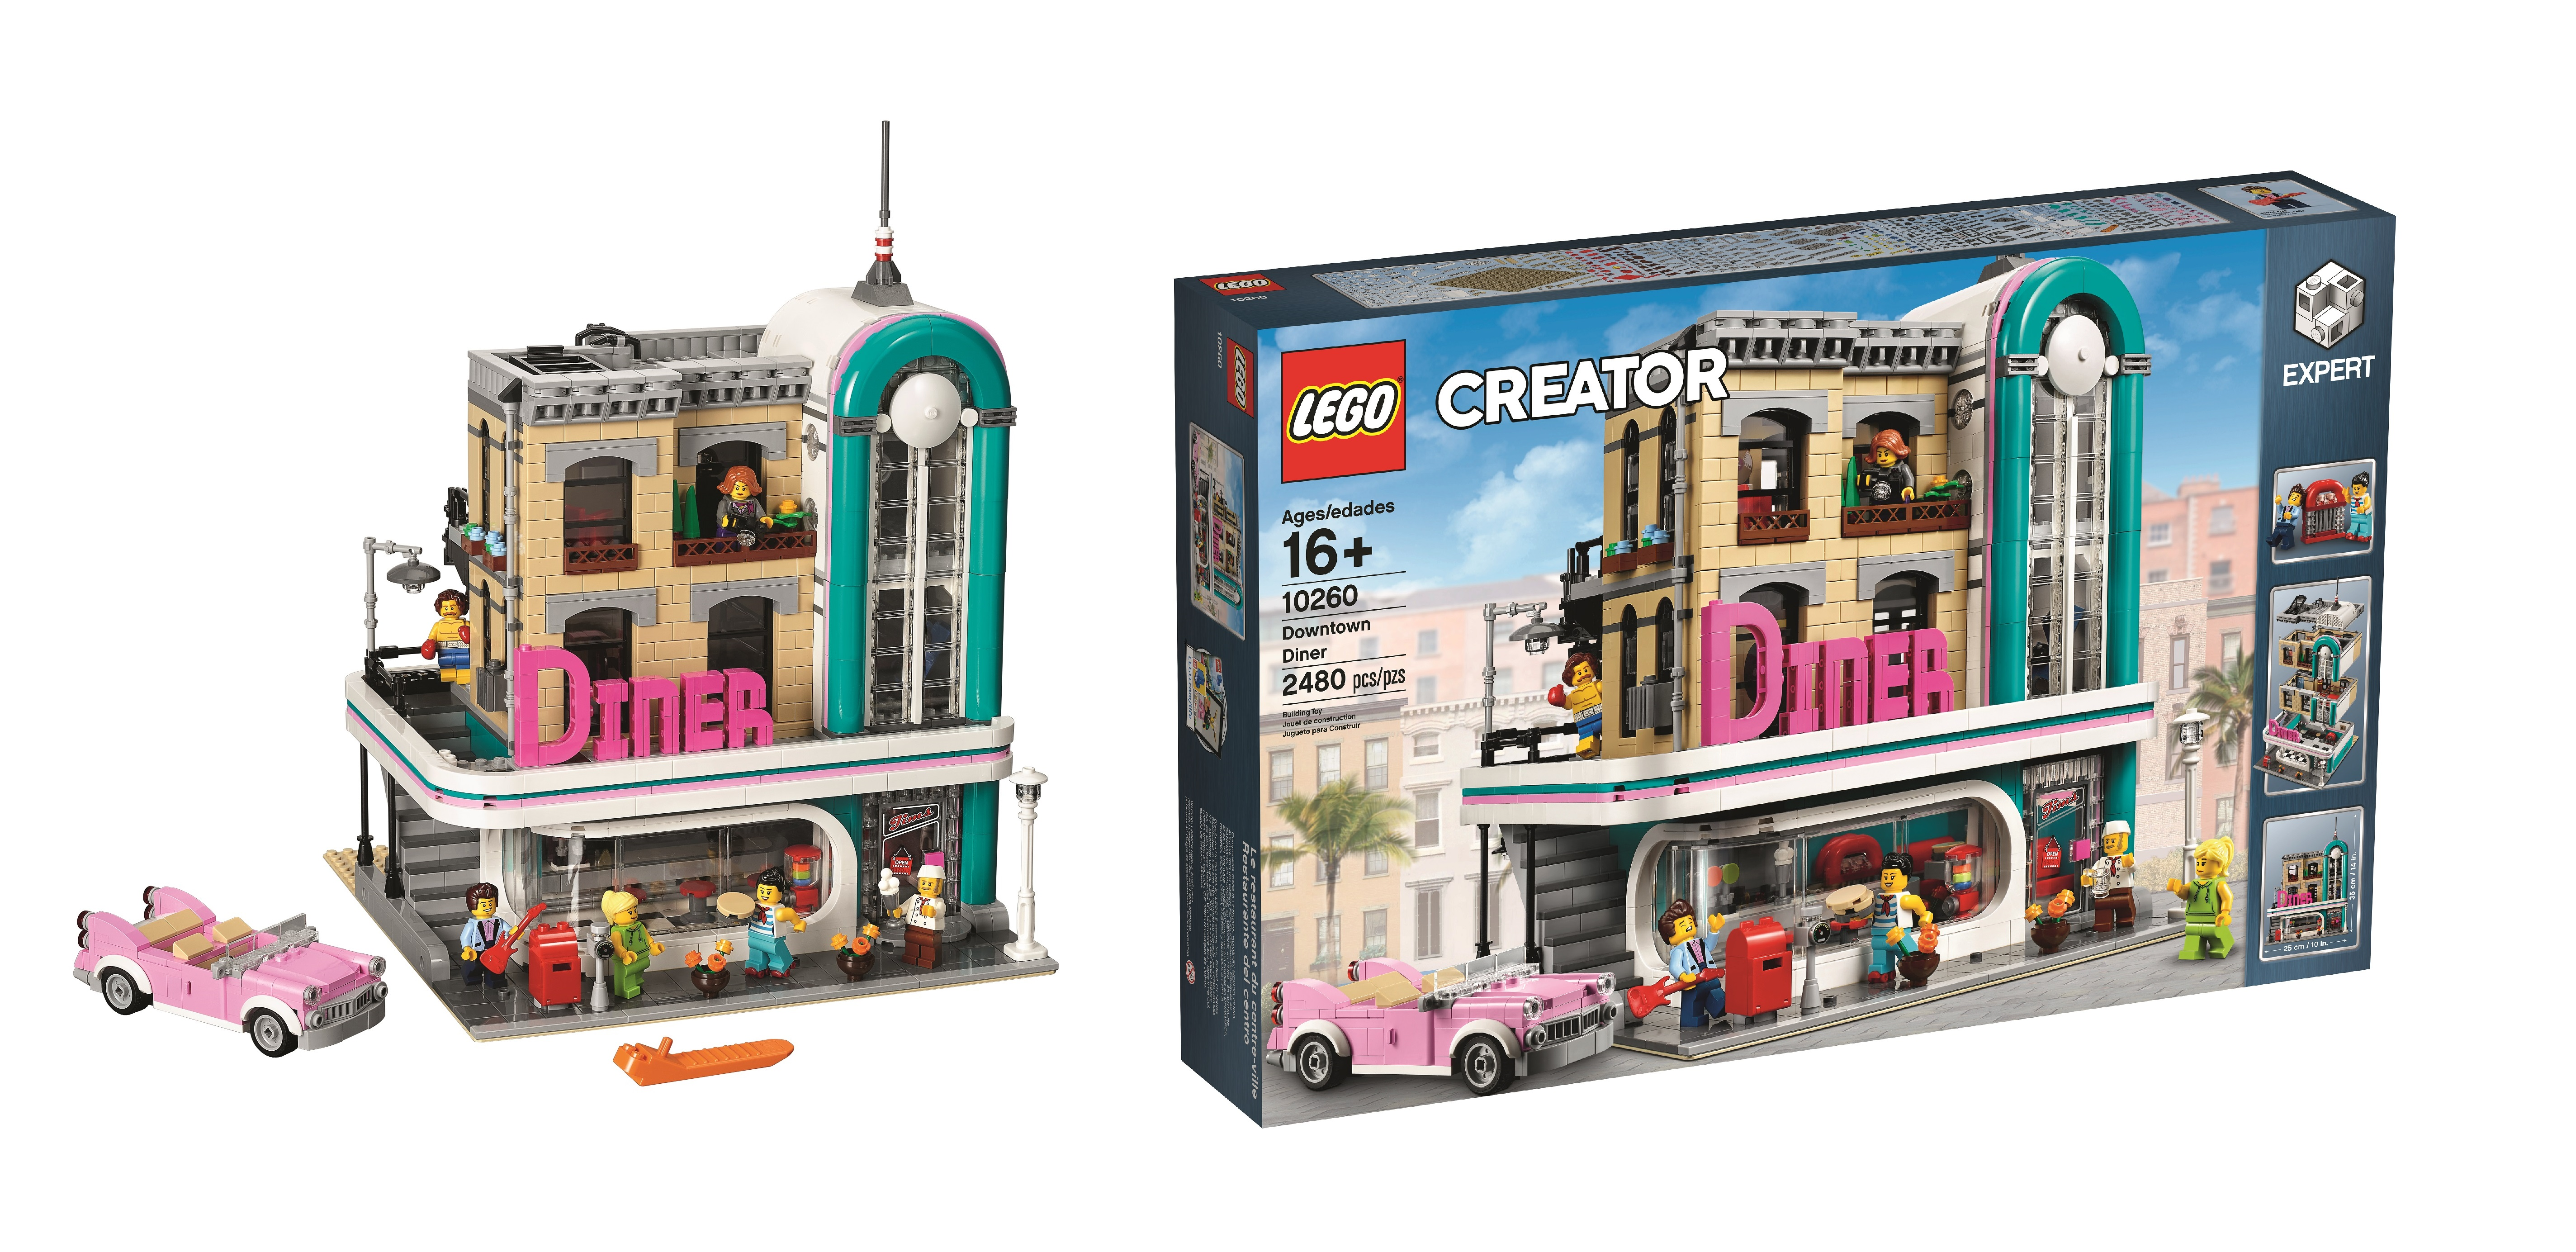 Heres A Look At Lego 10260 Downtown Diner The First Modular Building Of 2018